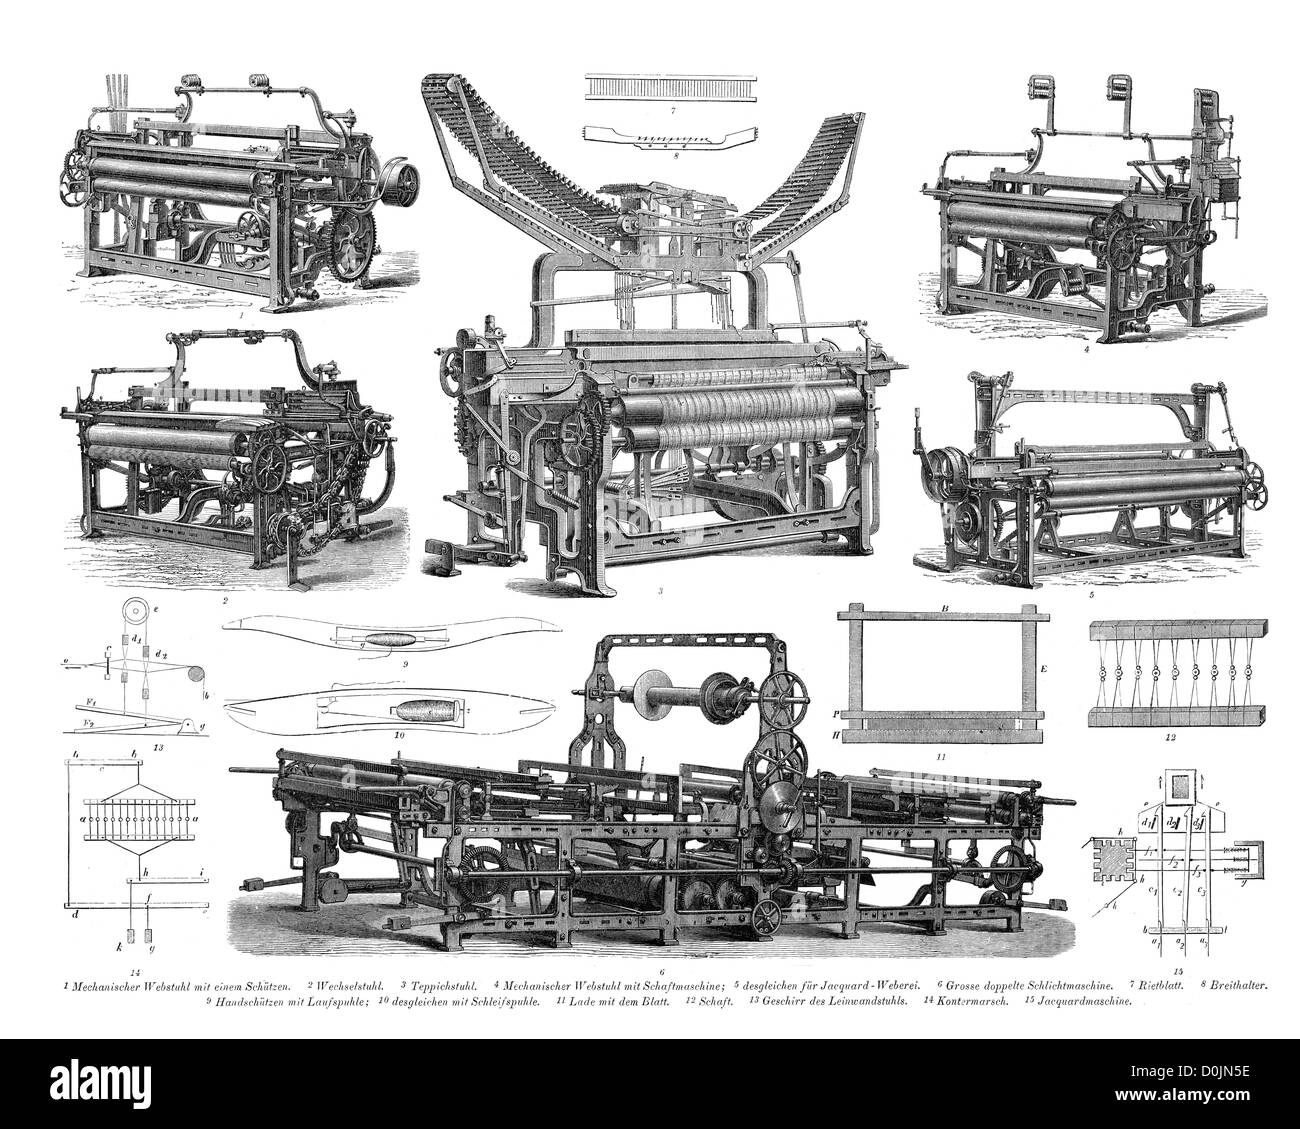 Collection of machines from the industrial revolution, including a carpet loom, jacquard weaving machine